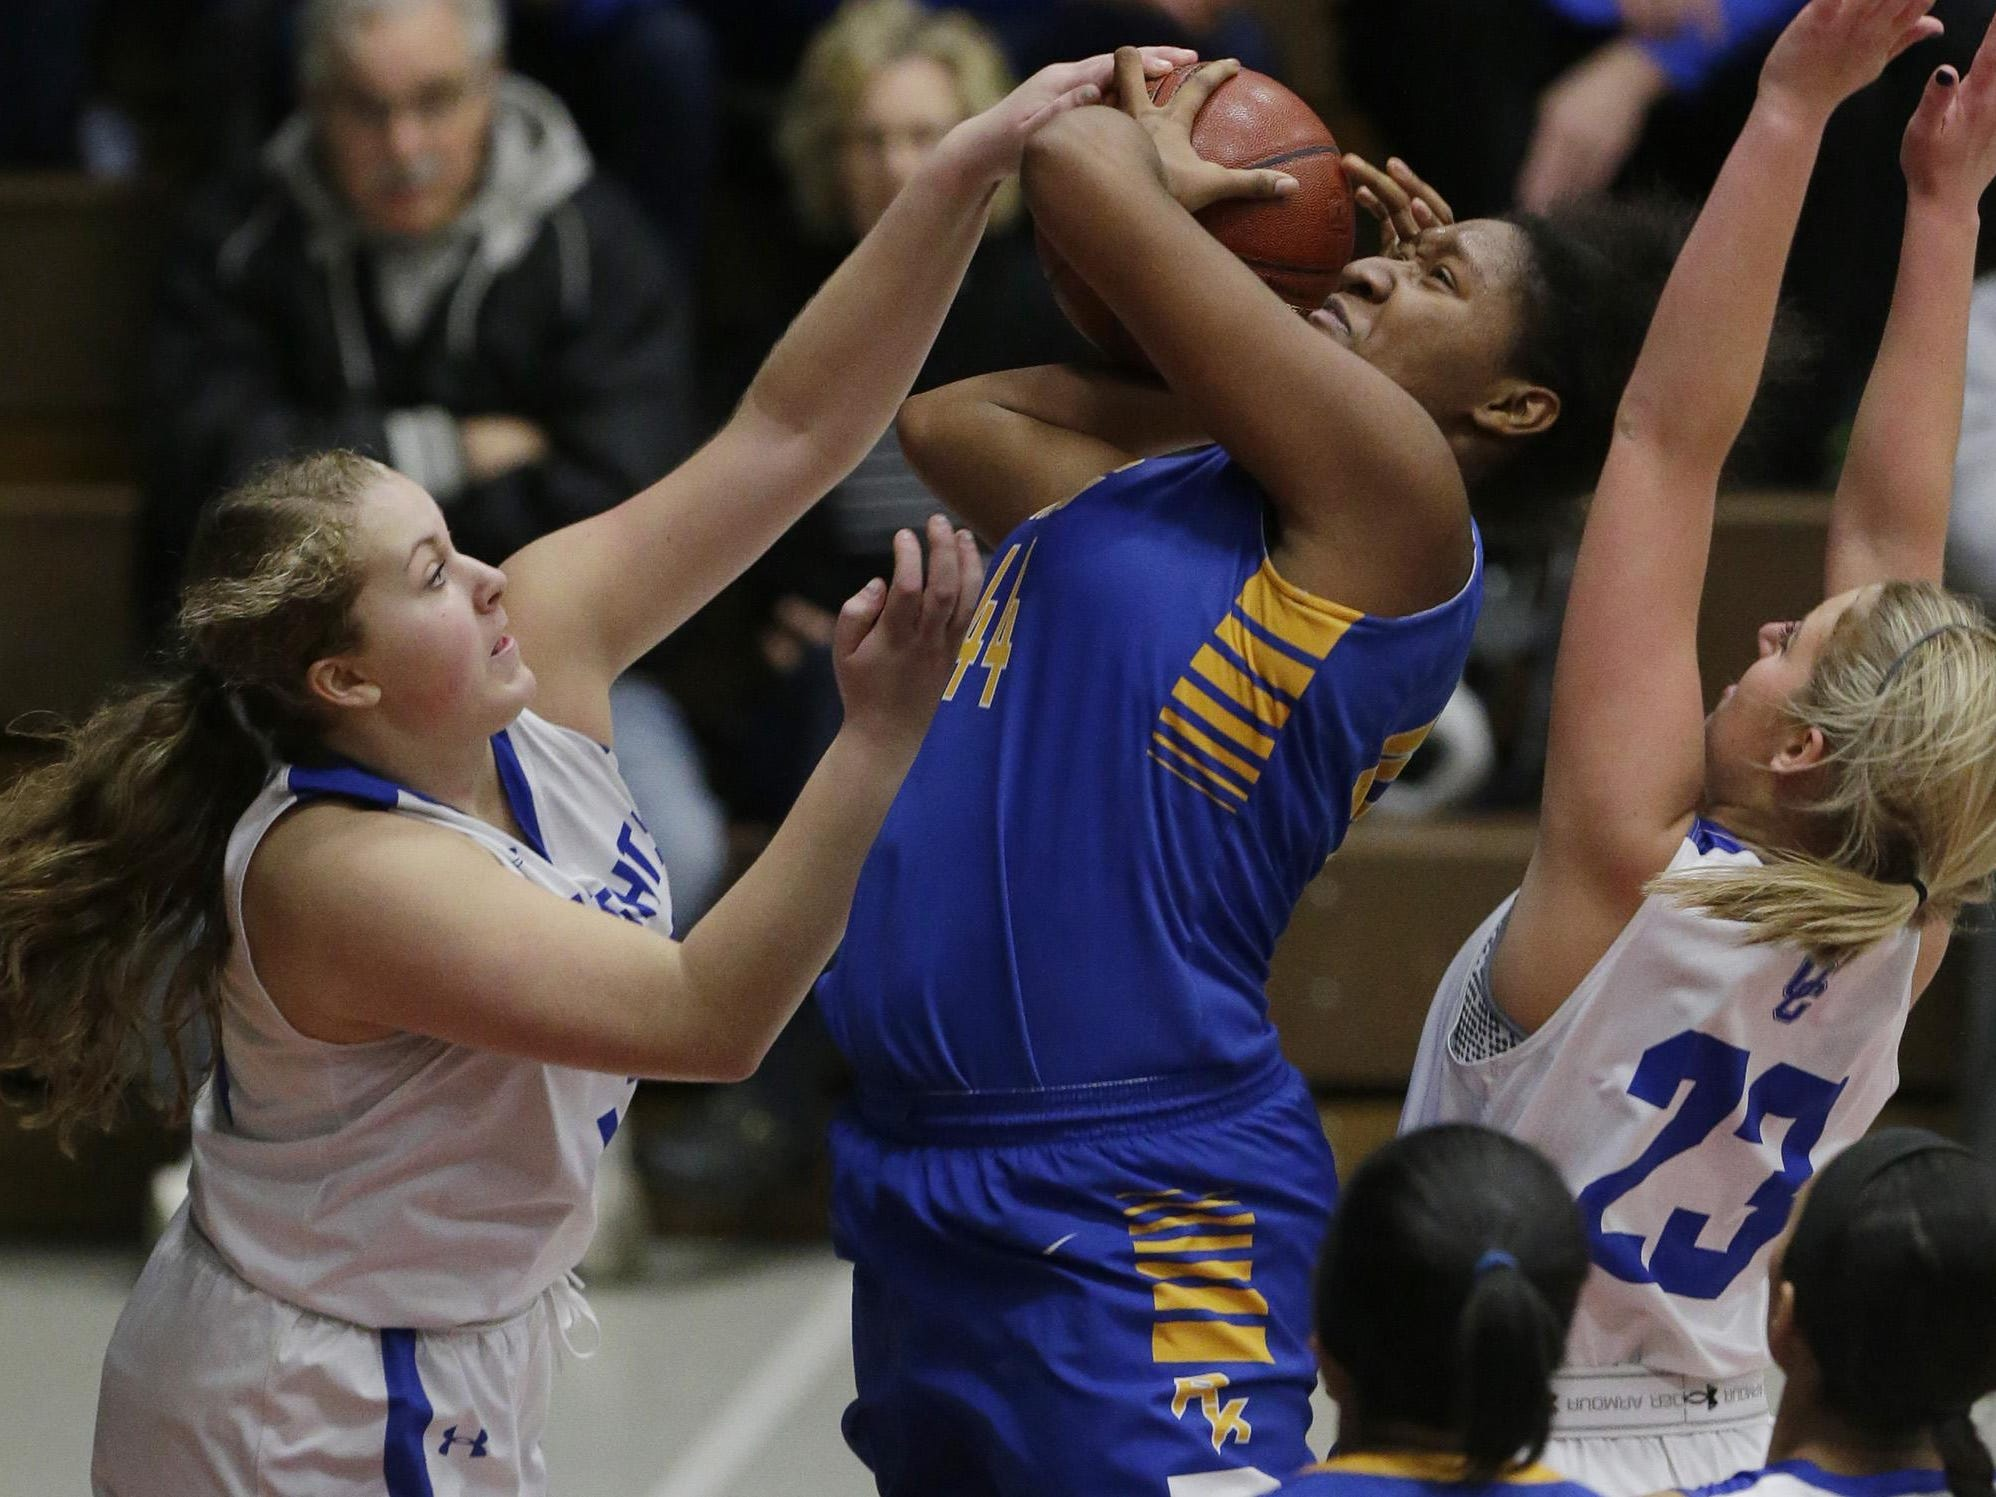 Milwaukee King's Sydnee Roby, a 6-foot-4 sophomore, puts up a shot against Oak Creek during a sectional championship game Saturday.